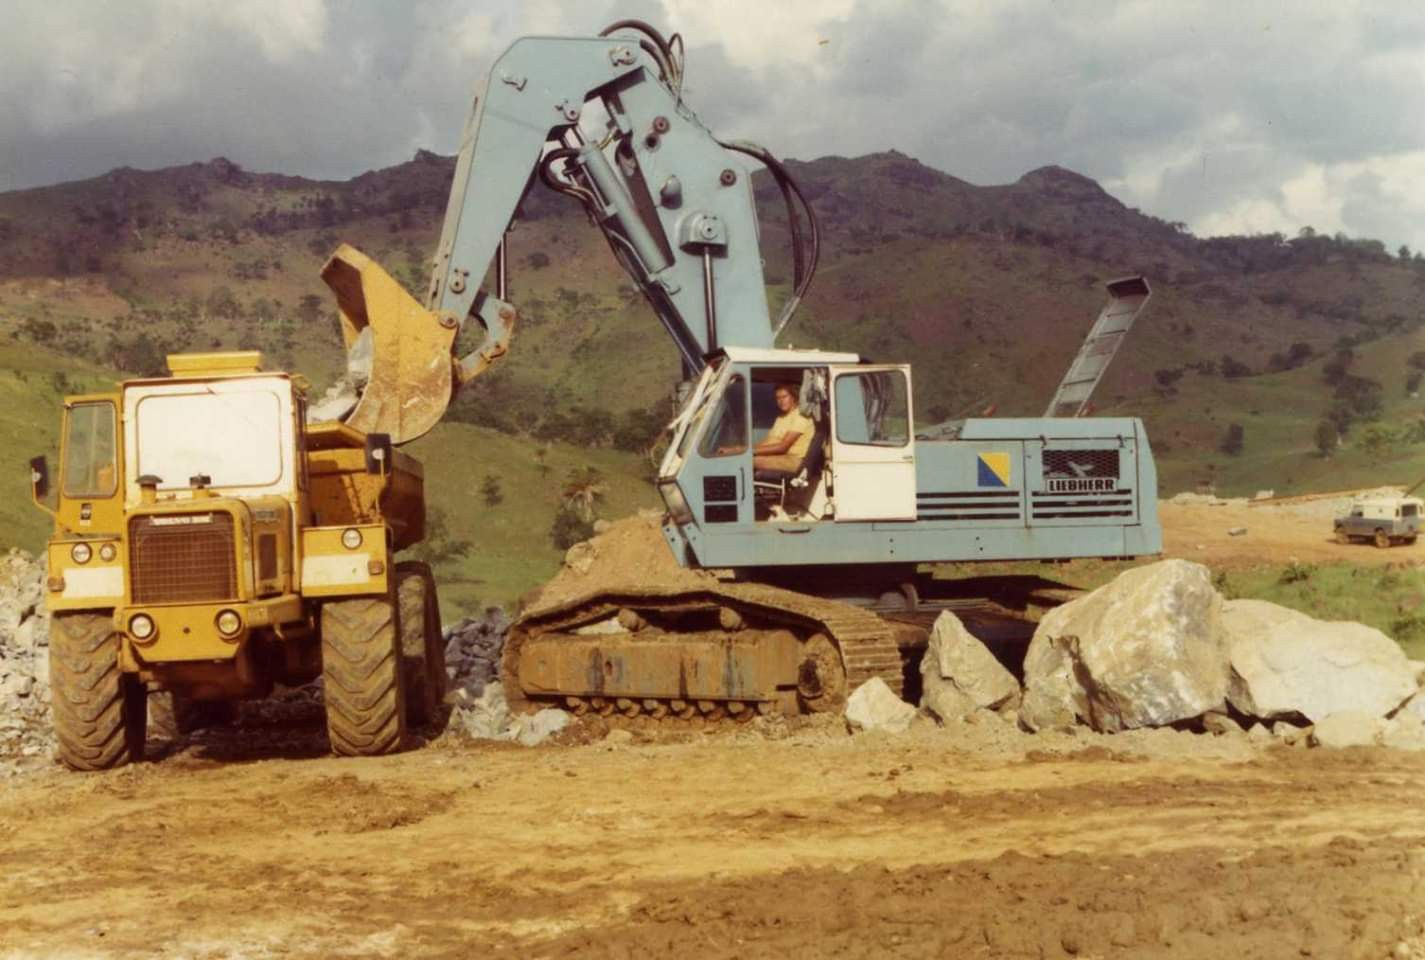 Pin by The Silver Spade on Construction Equipment